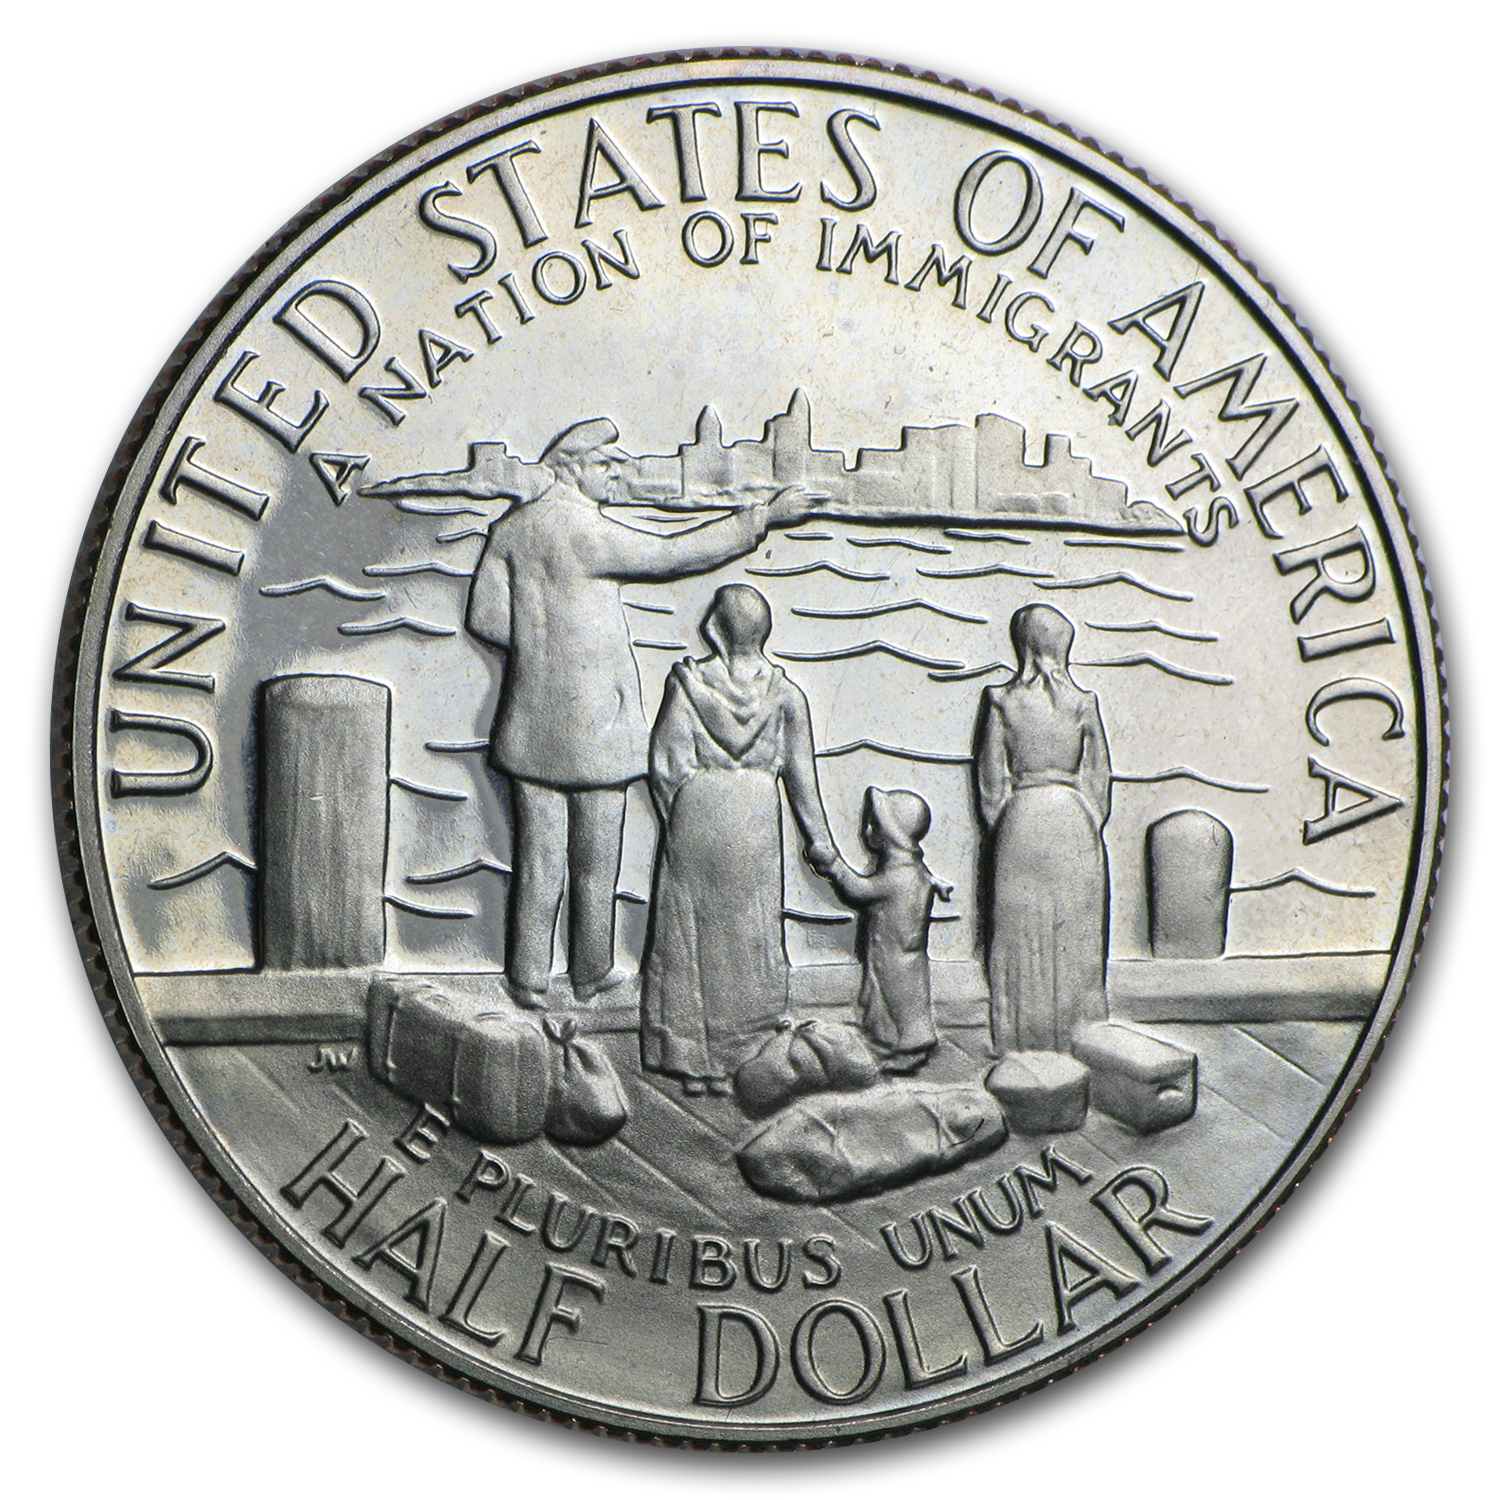 1986-S Statue of Liberty 1/2 Dollar Clad Commem Prf (w/Box & COA)